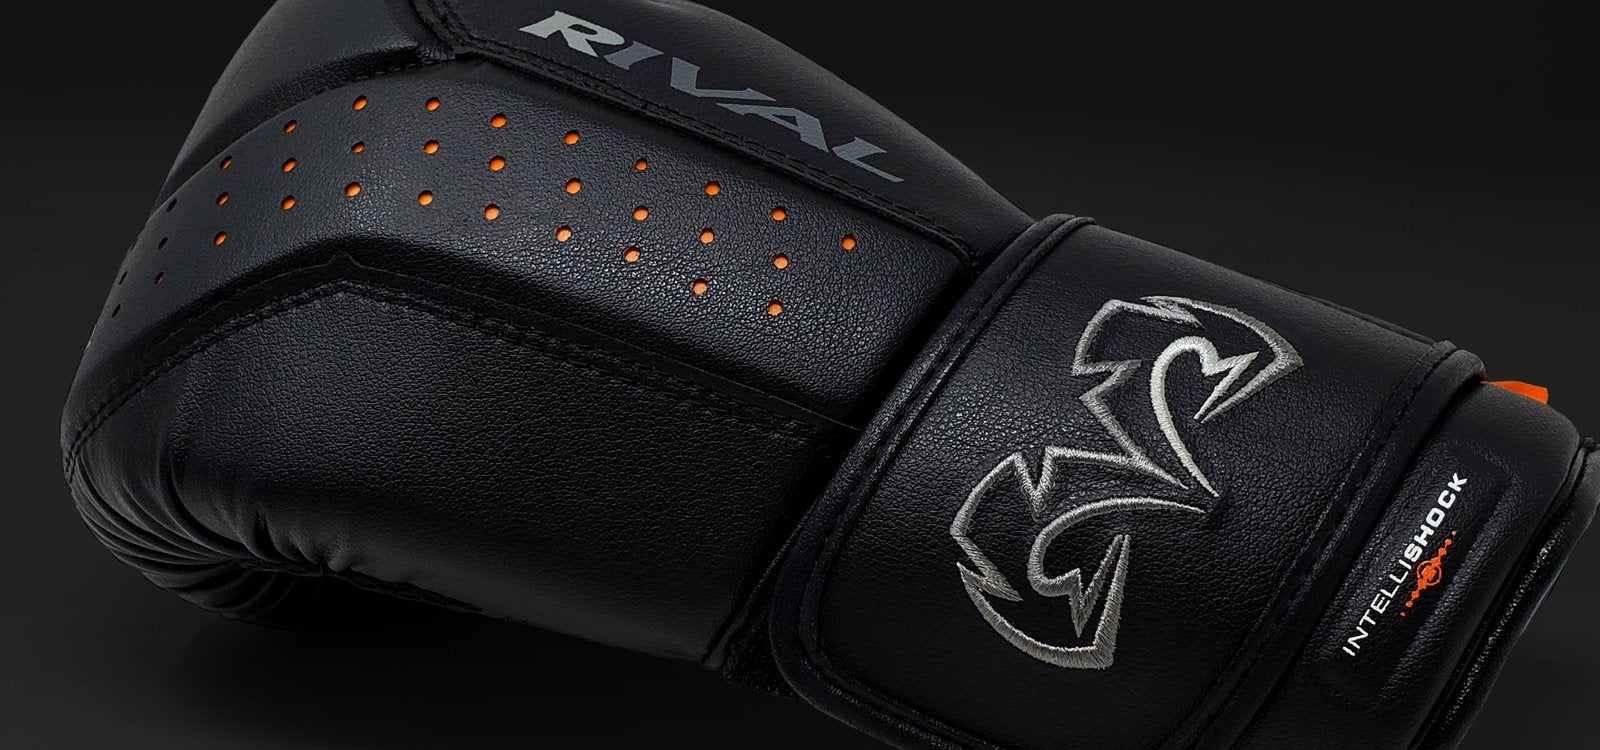 Rival RPM11 & RPM80 Now Available in Two Sizes